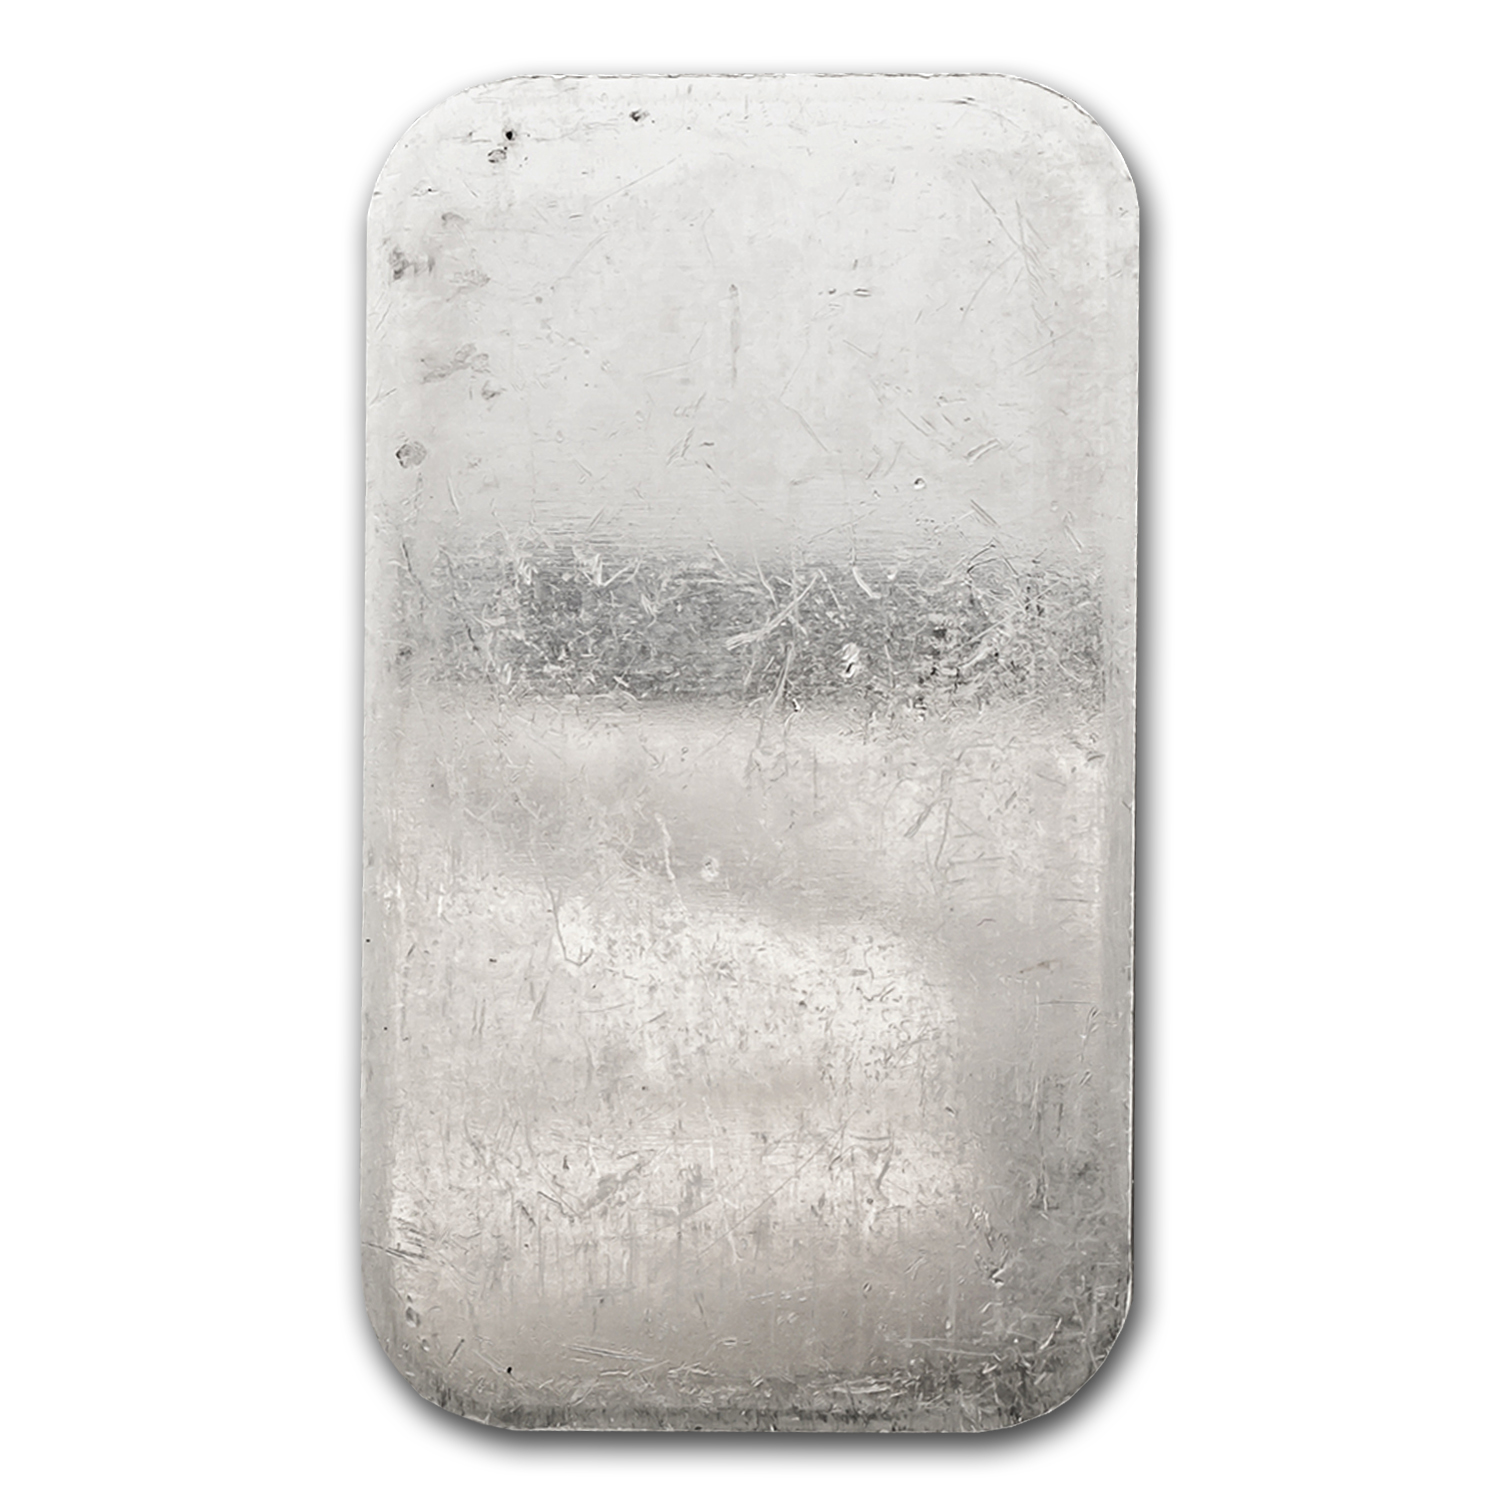 1 oz Silver Bars - Sharps Pixley & Co LTD